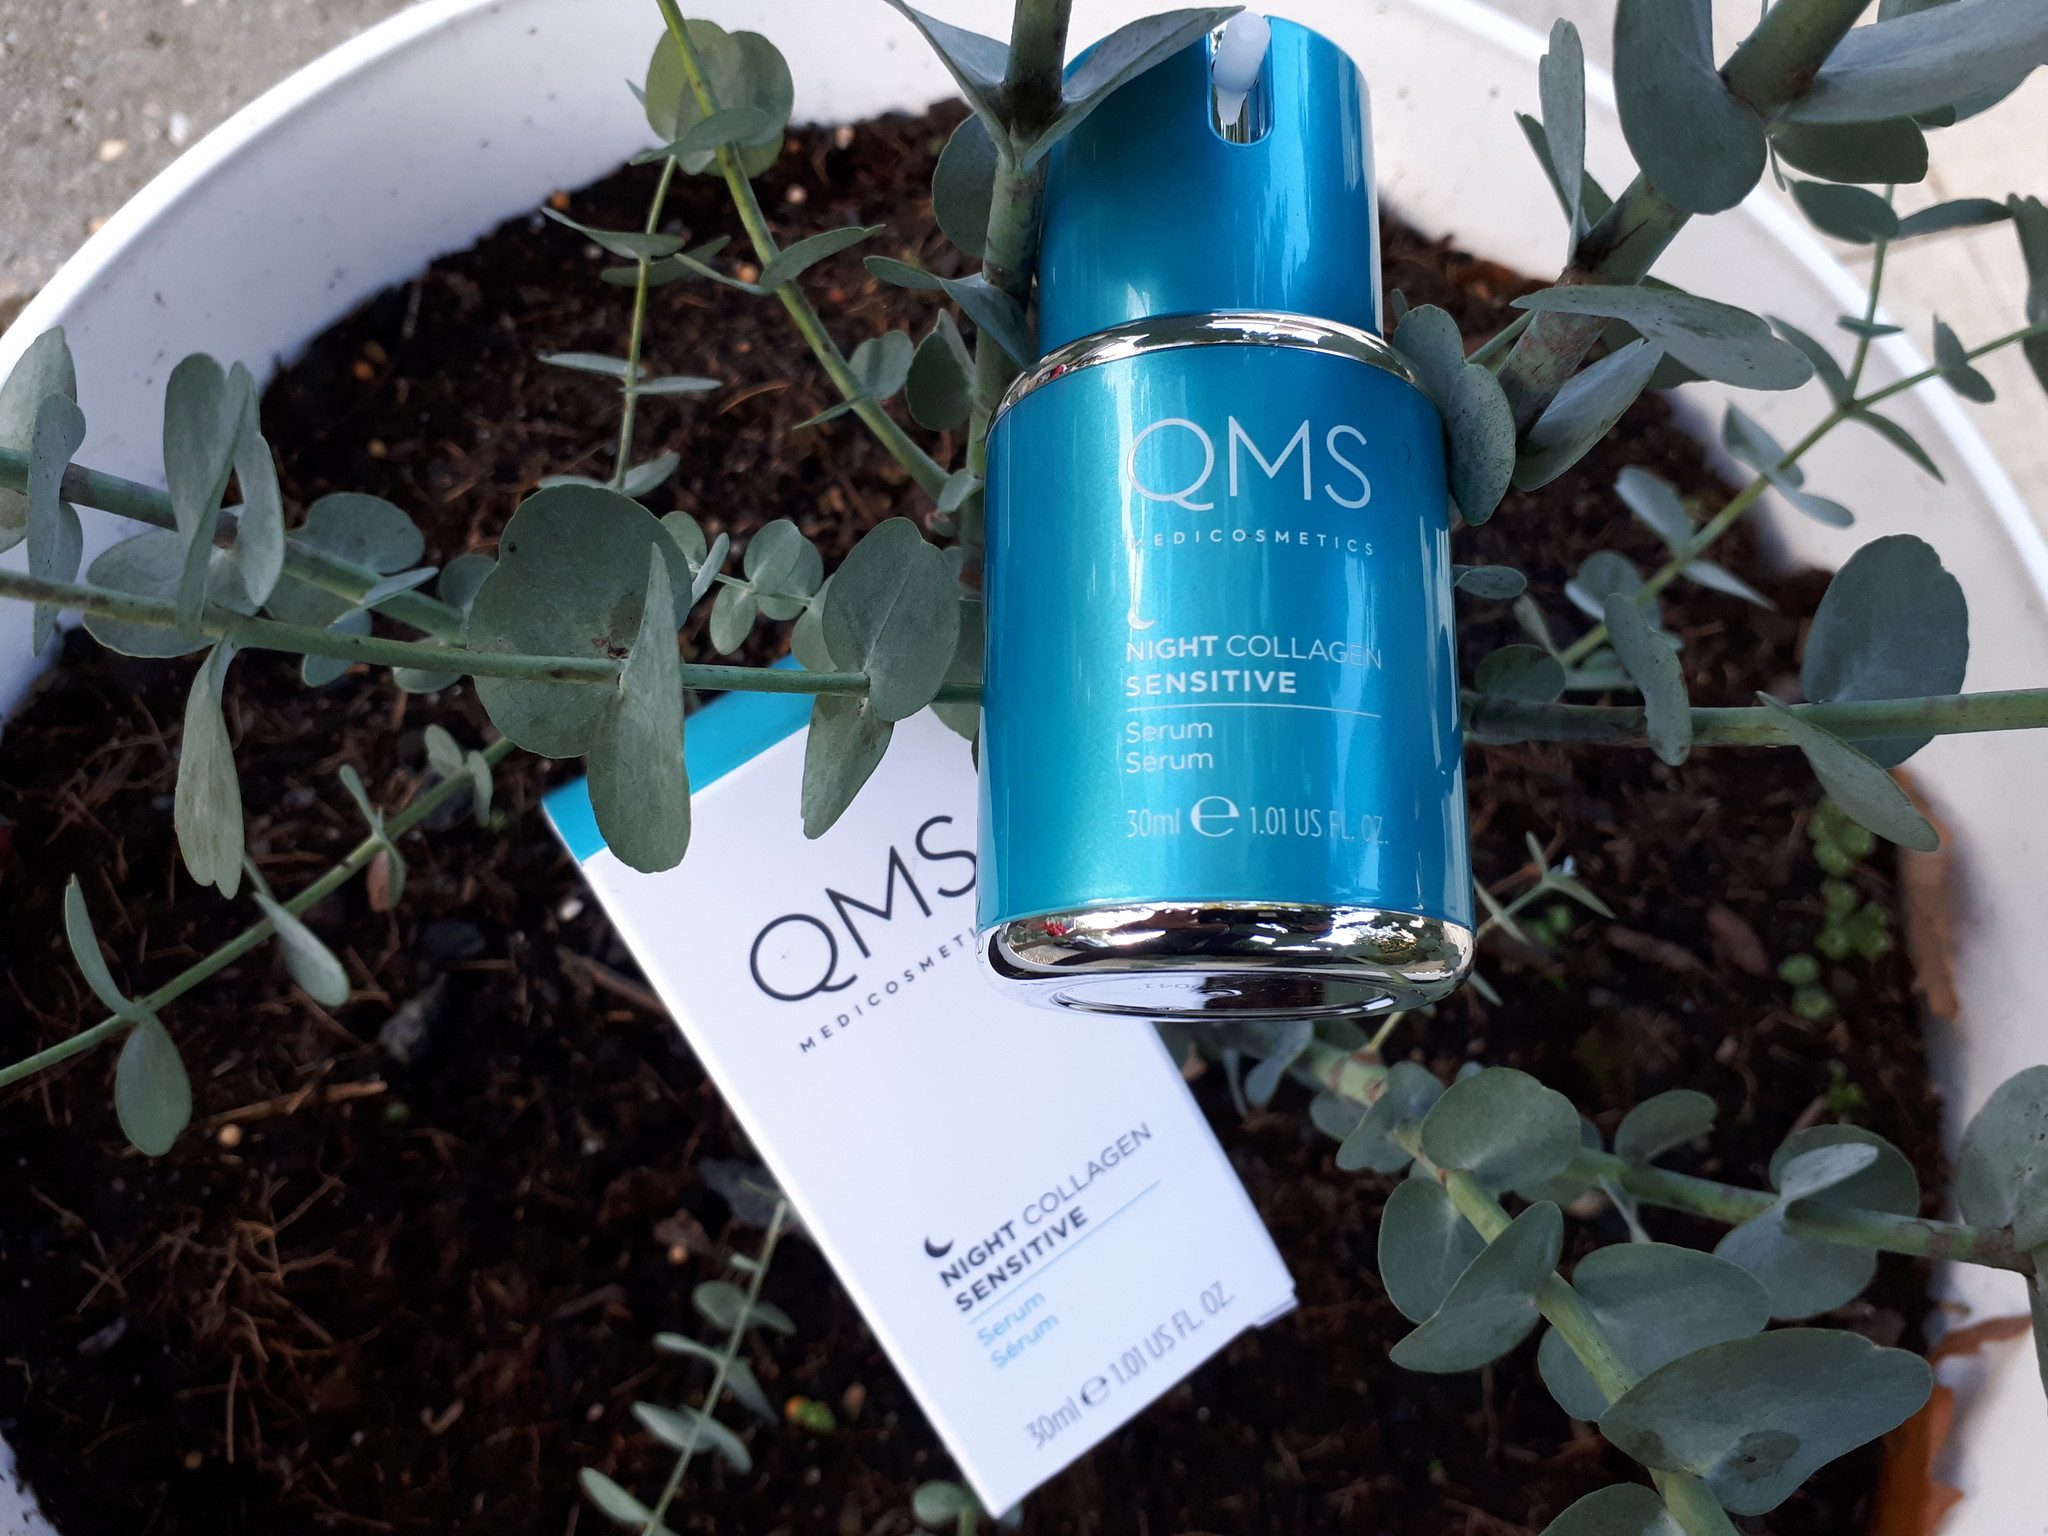 Review QMS Night Collagen Sensitive Serum